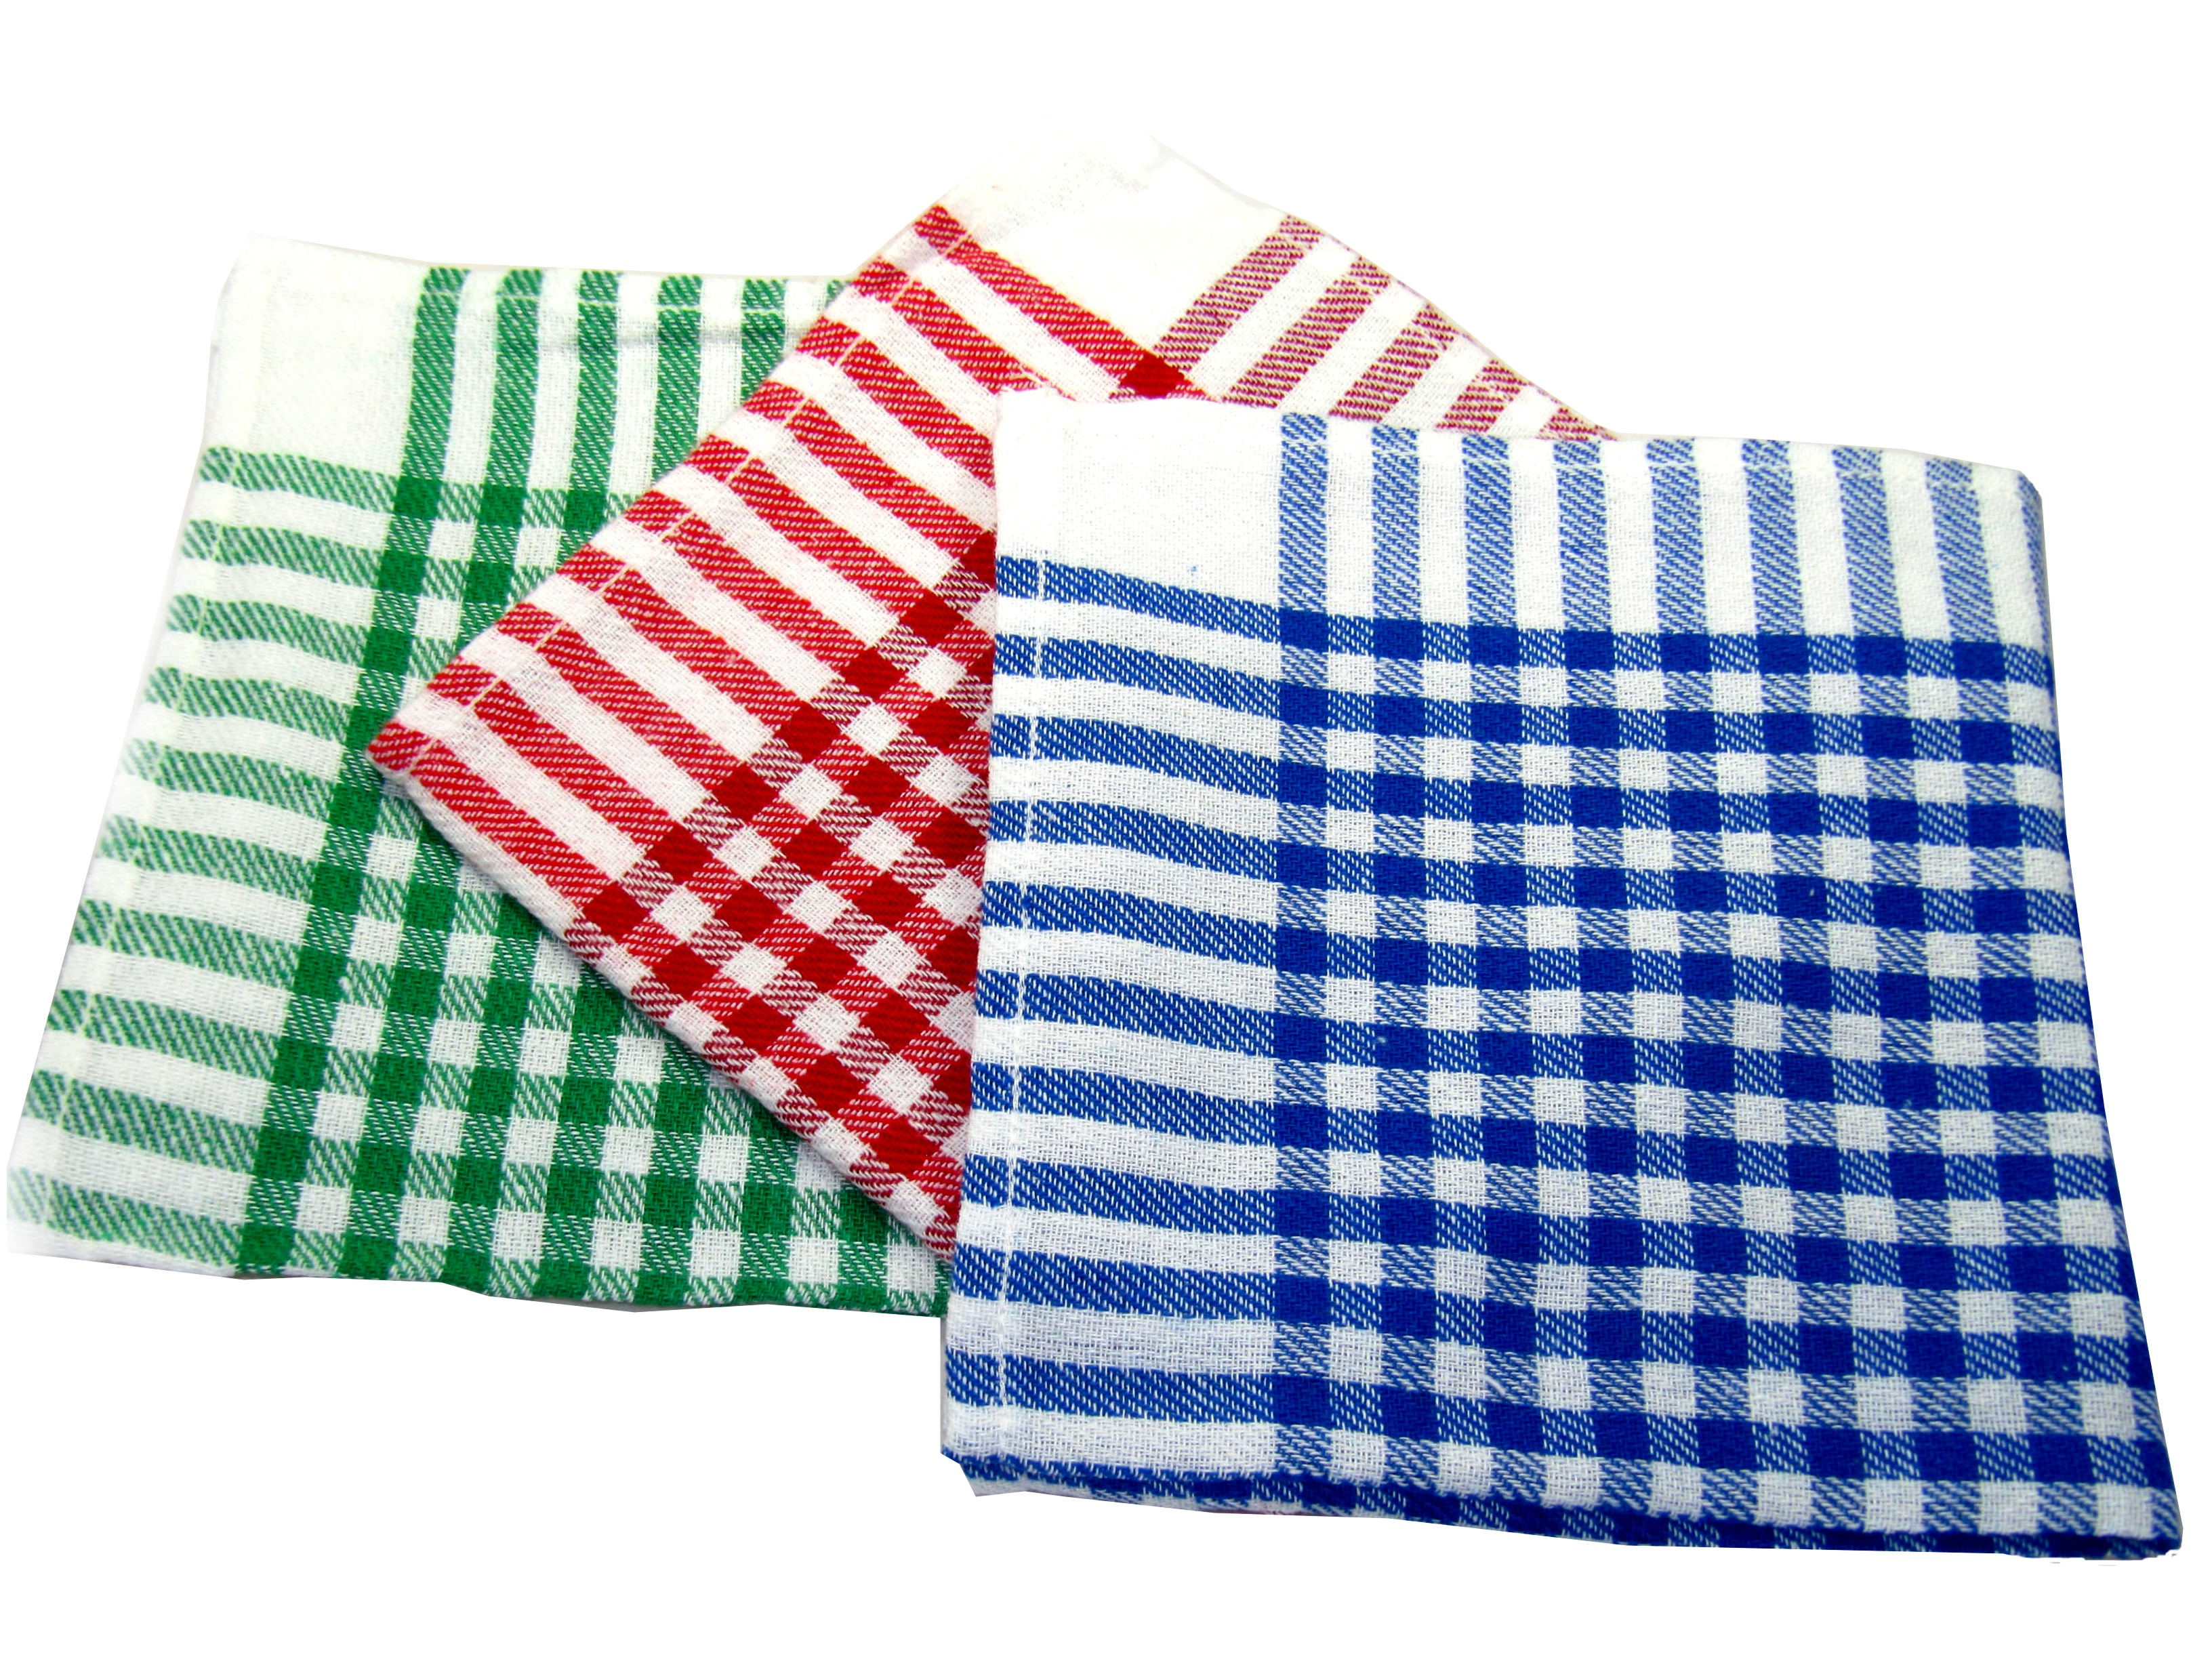 Red, green or blue kitchen towels 45cmx45cm